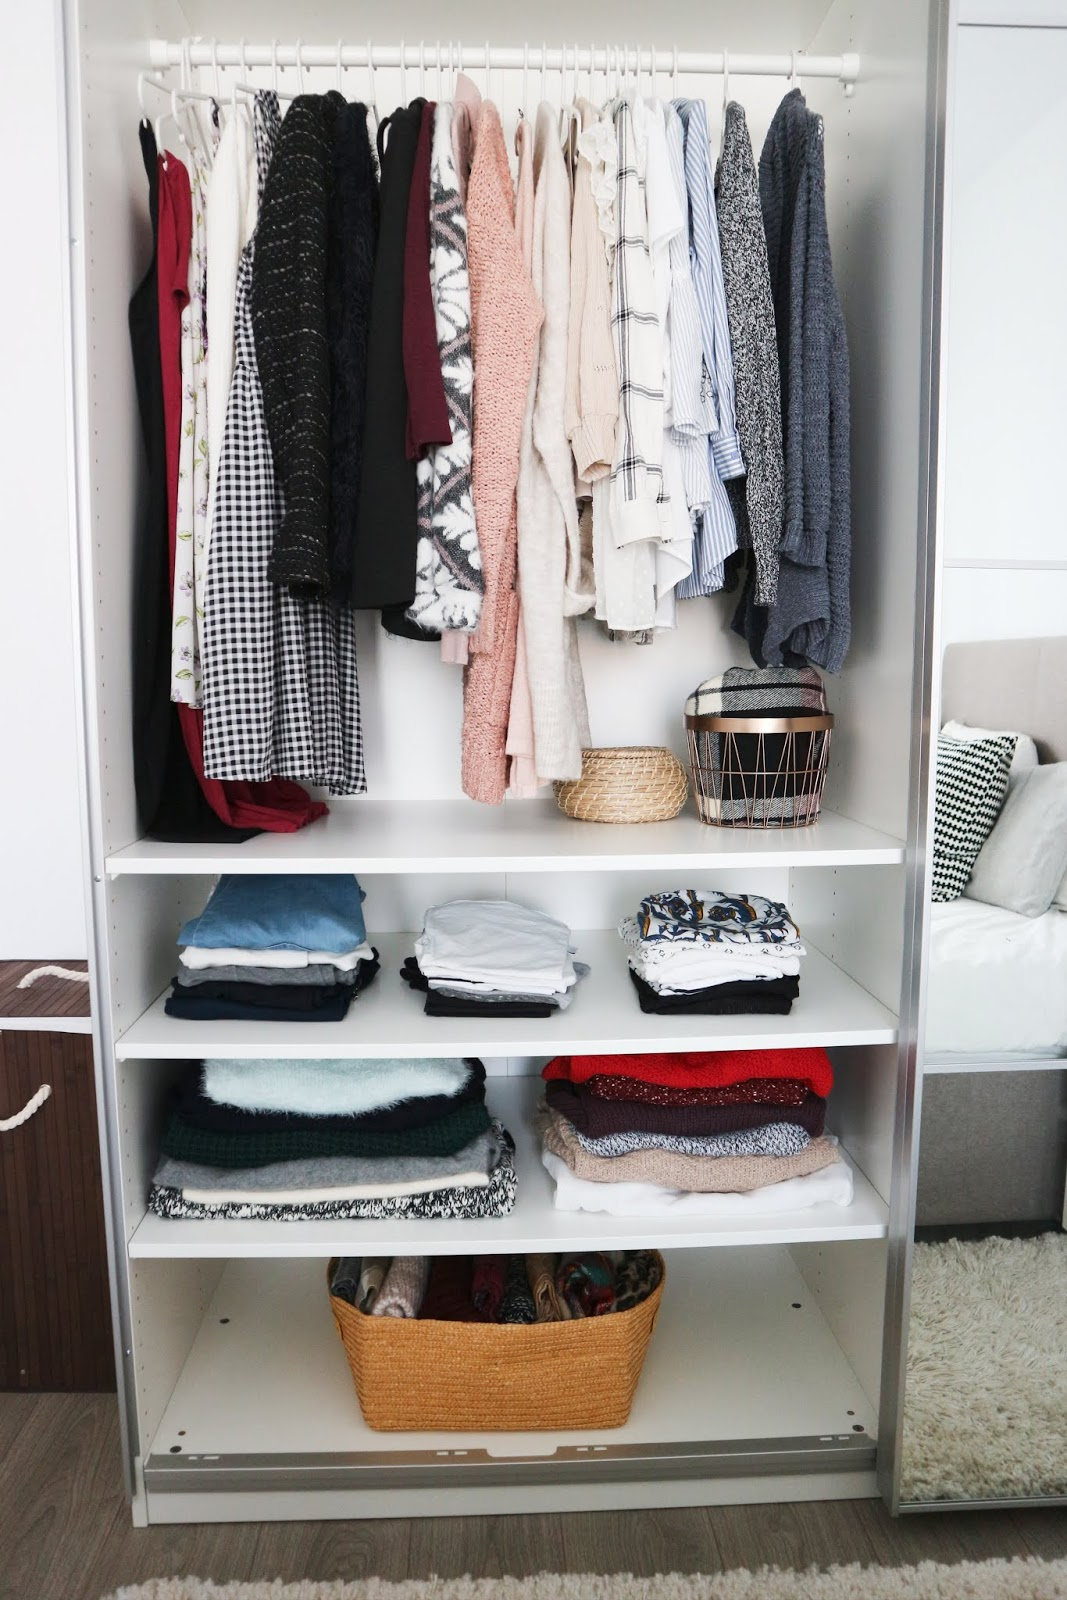 minimalist wardrobe with hangers and shelves